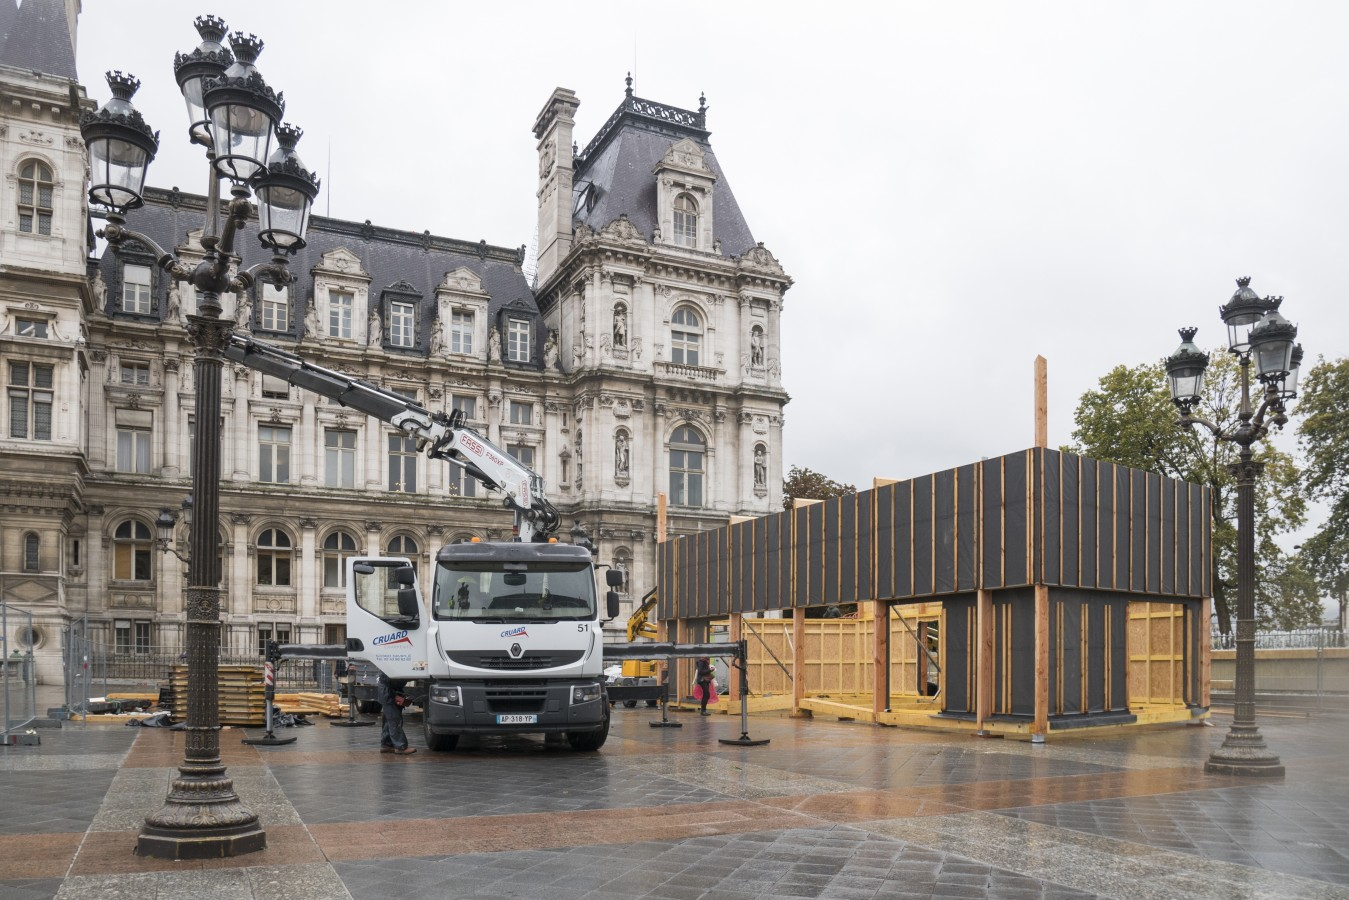 Un chantier au coeur de Paris - 15 septembre